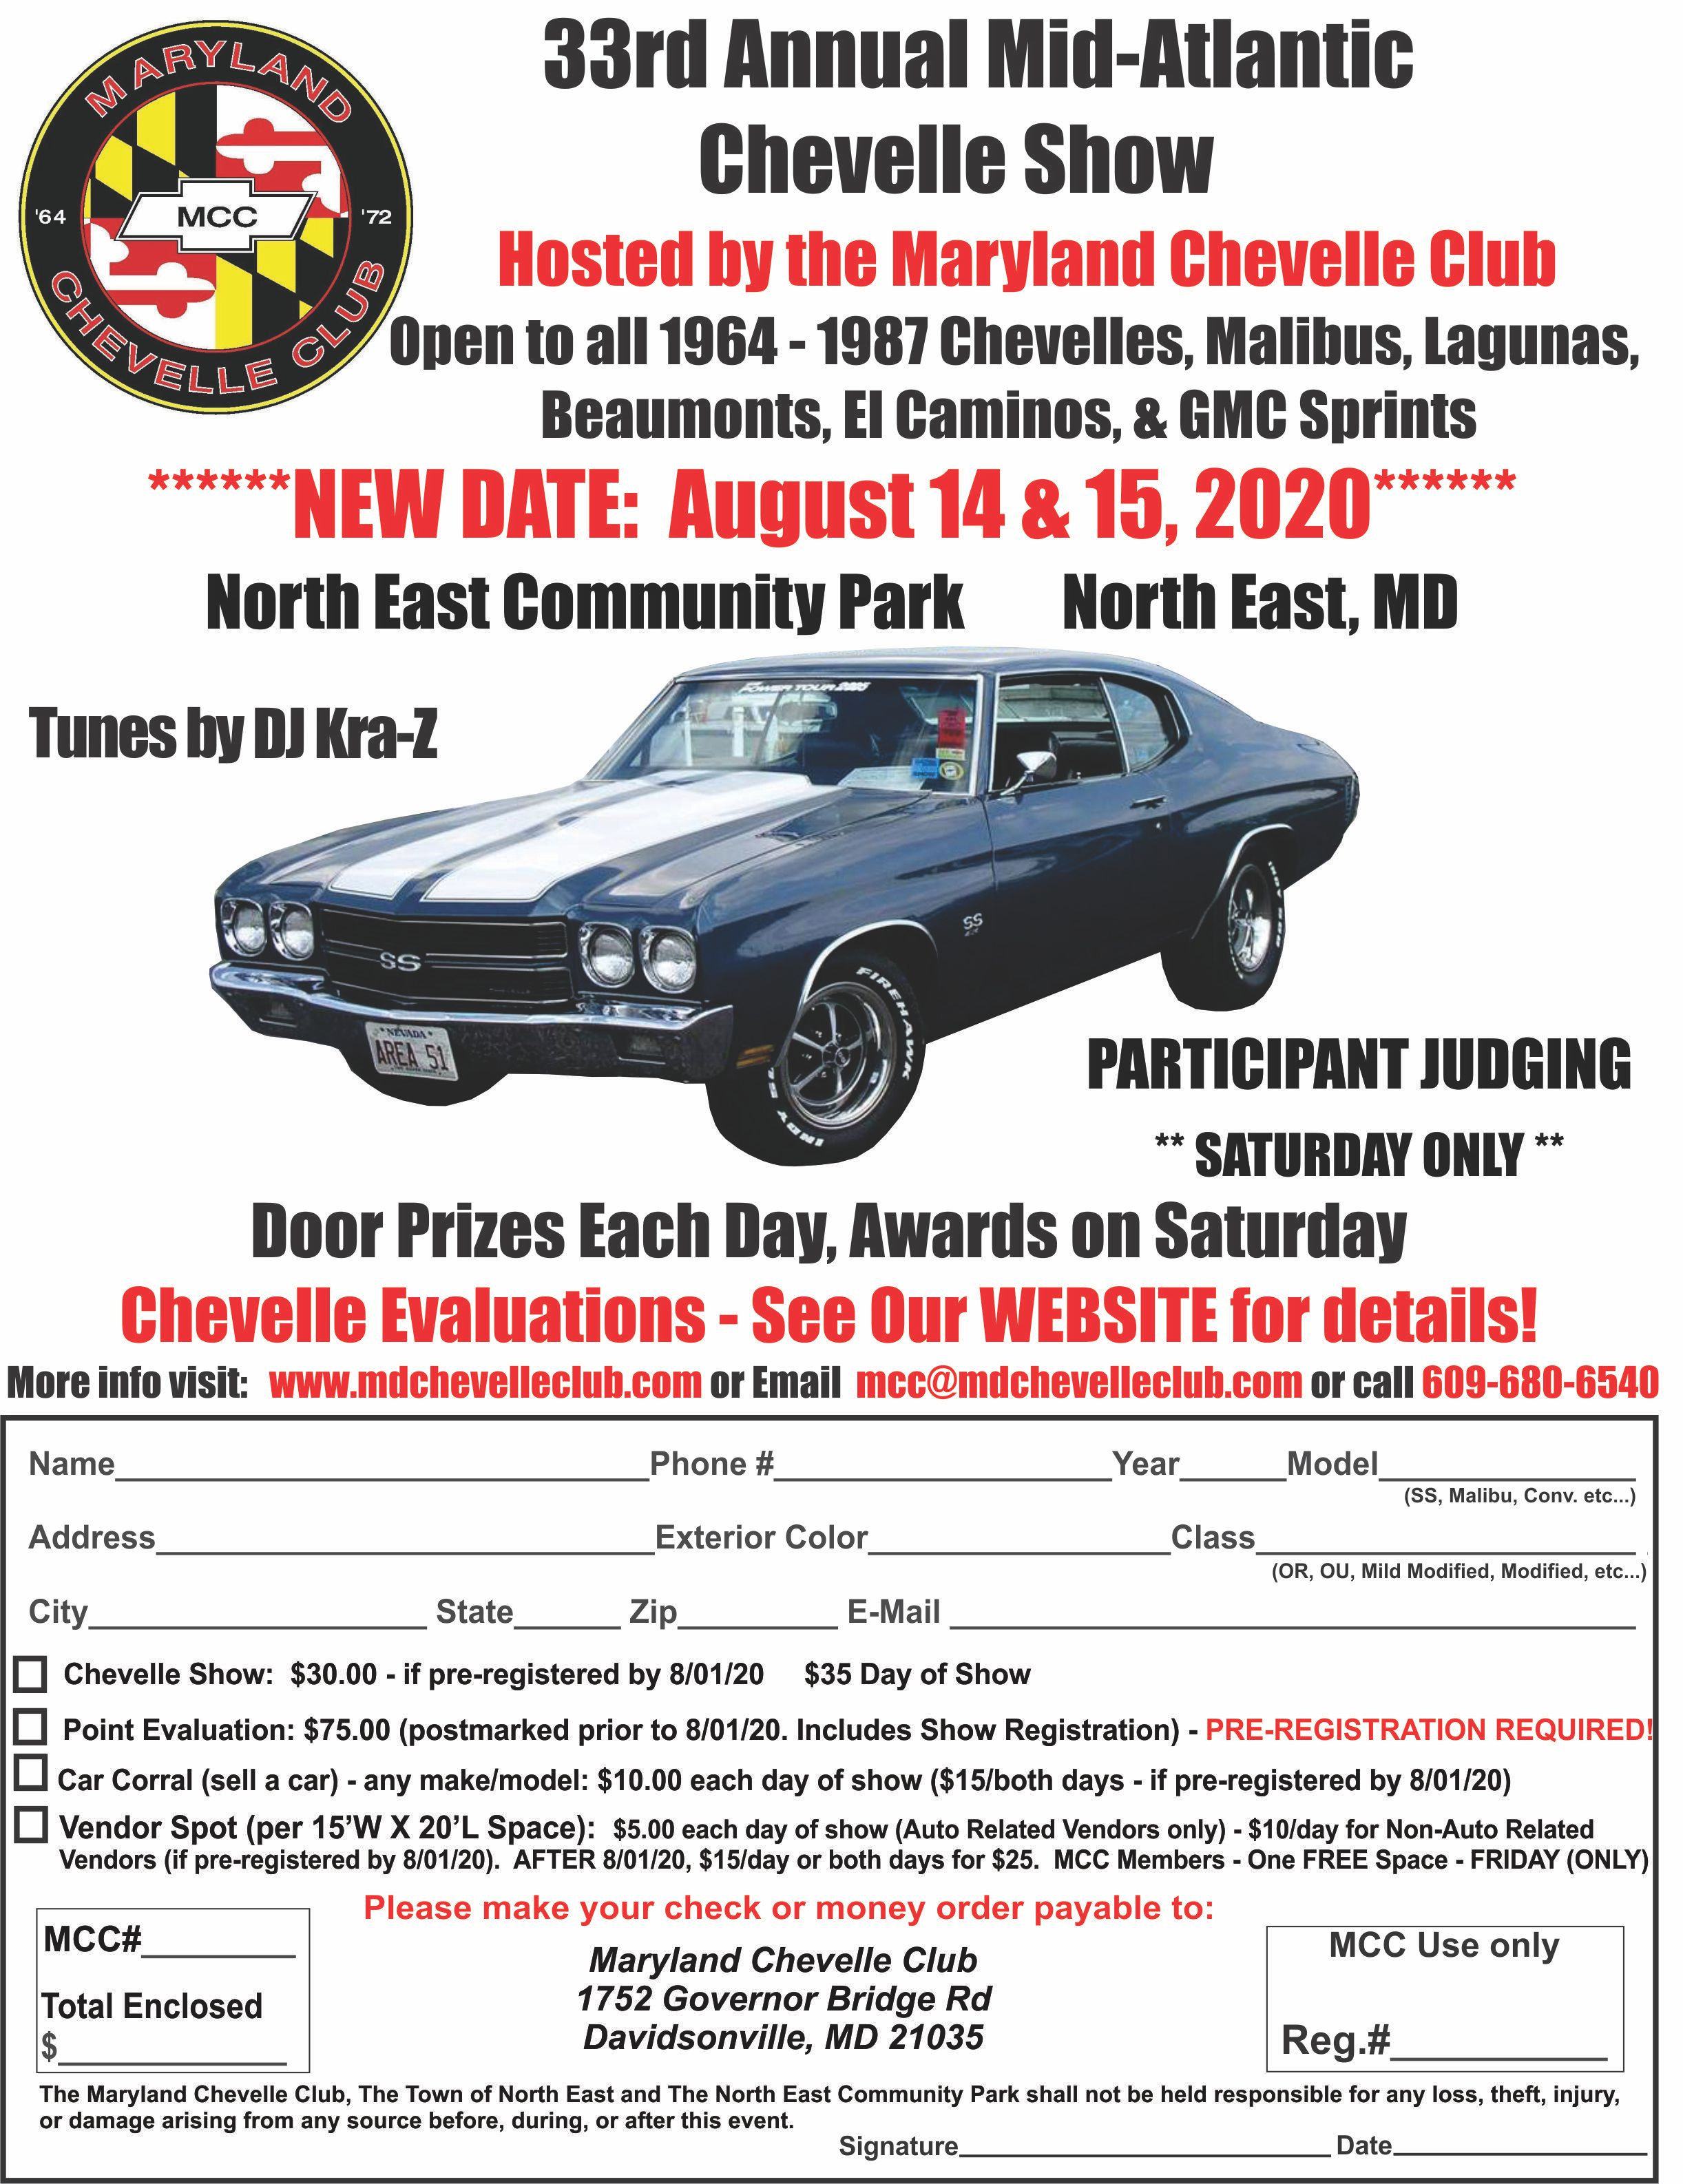 2020 33rd Annual Mid-Atlantic Chevelle Show August 14th and 15, 2020